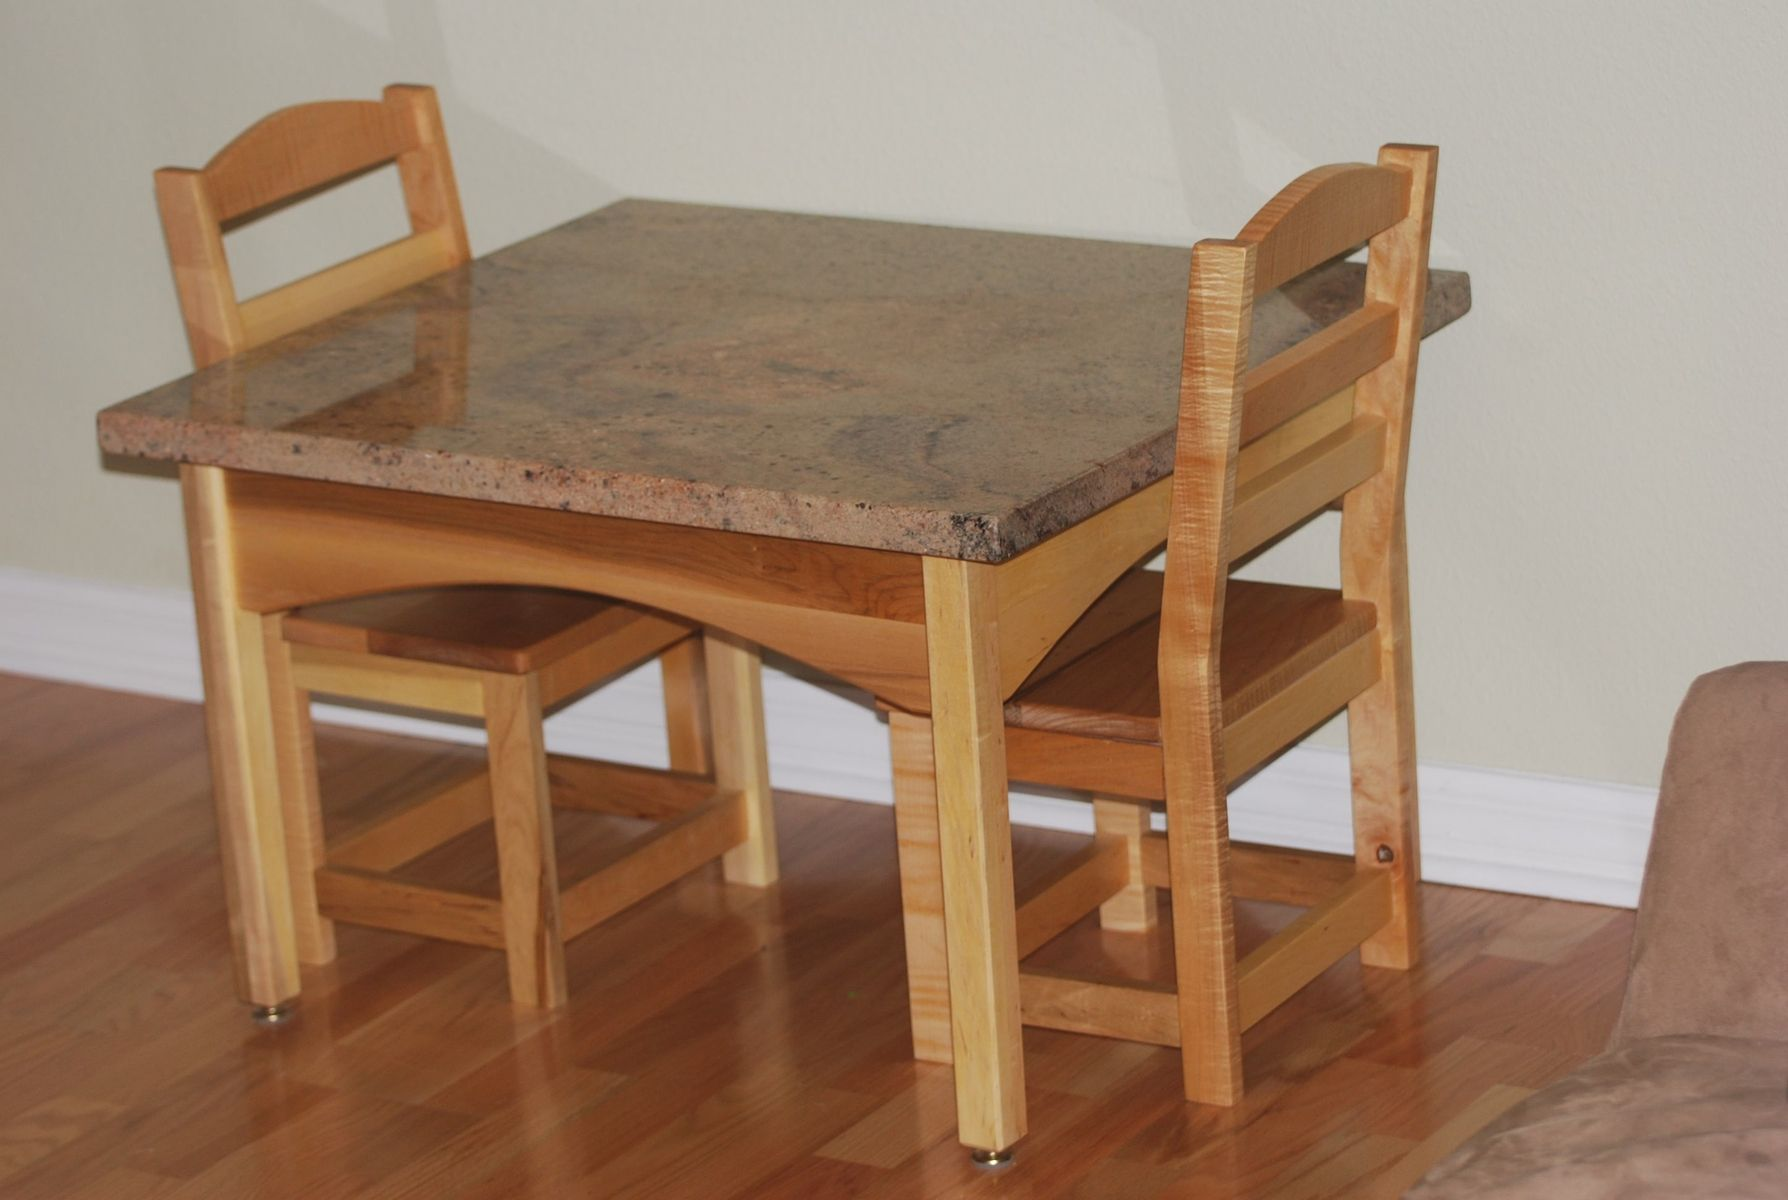 Hand Crafted Childrens Table And Chair Set By Memphis Woodwork 39 S